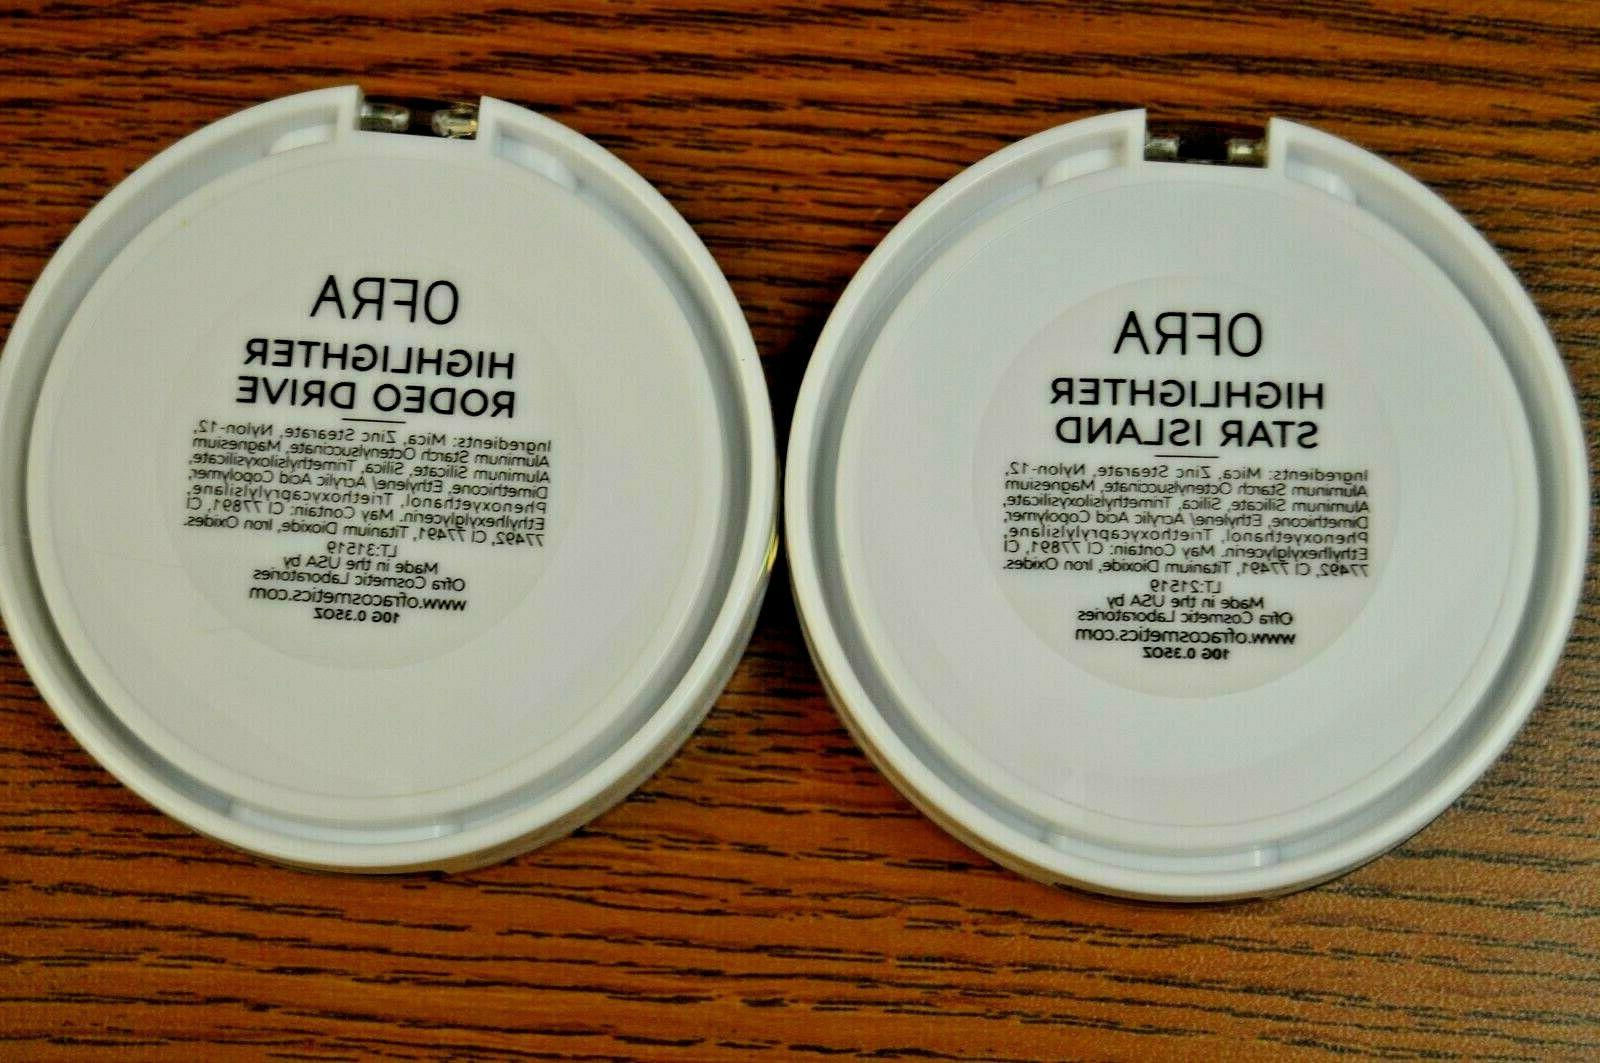 2X Cosmetic in Rodeo Drive/ Star Island ~ 0.35 Oz / 10g